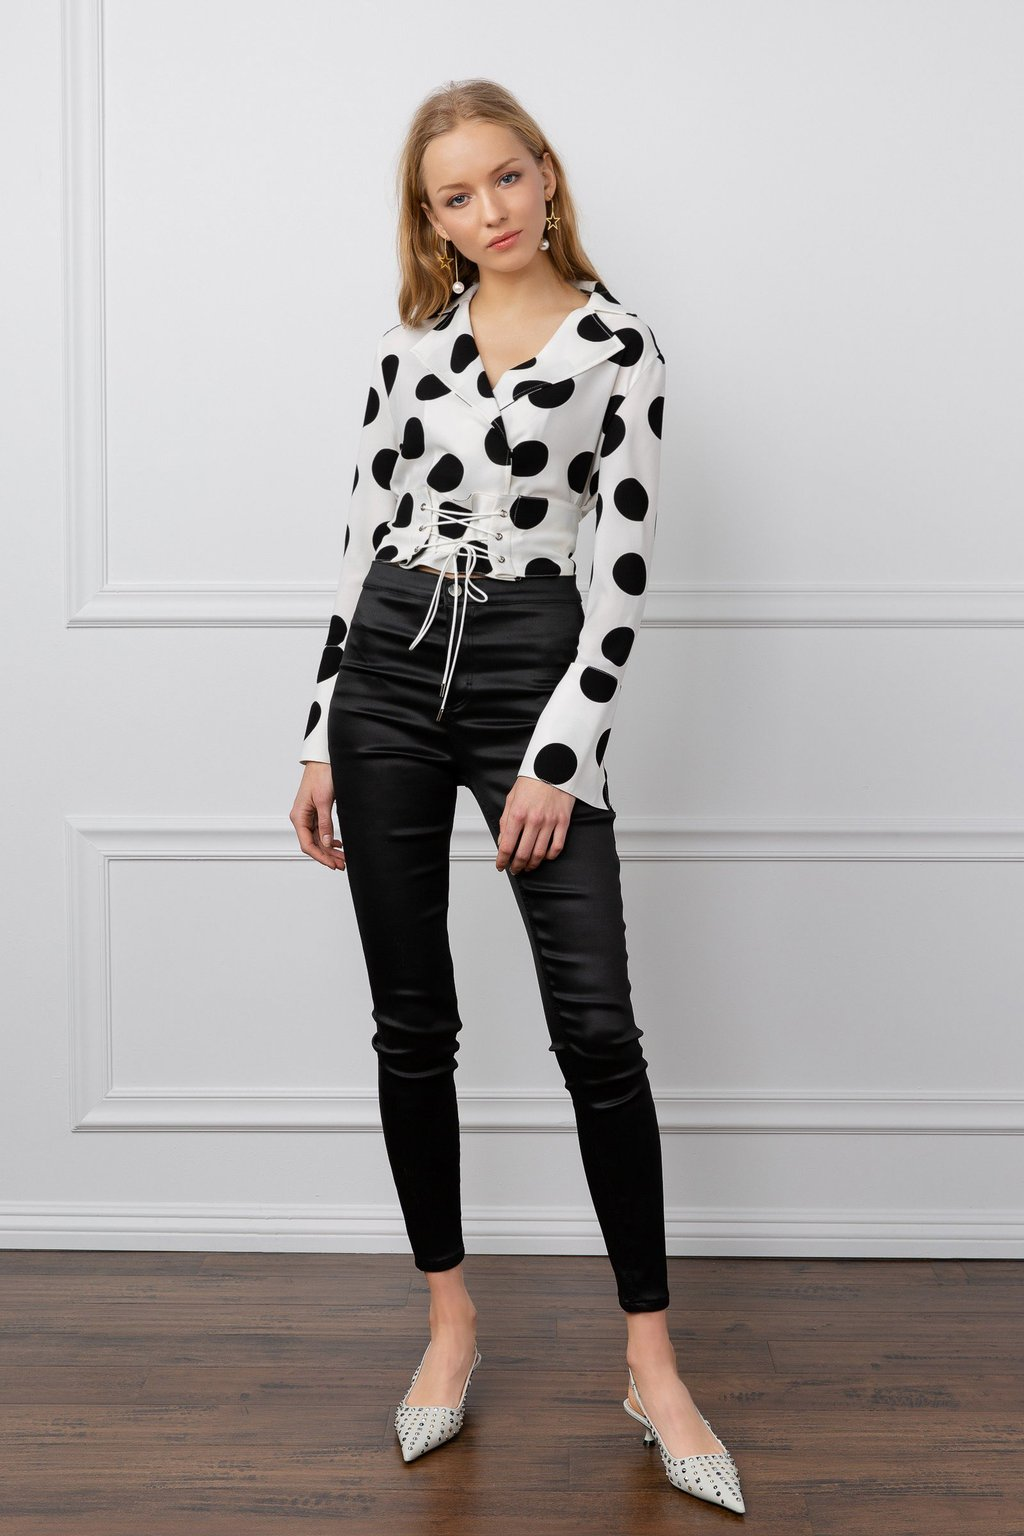 Louise Polka Dot Long Sleeve Top with Corset by J.ING women's fashion